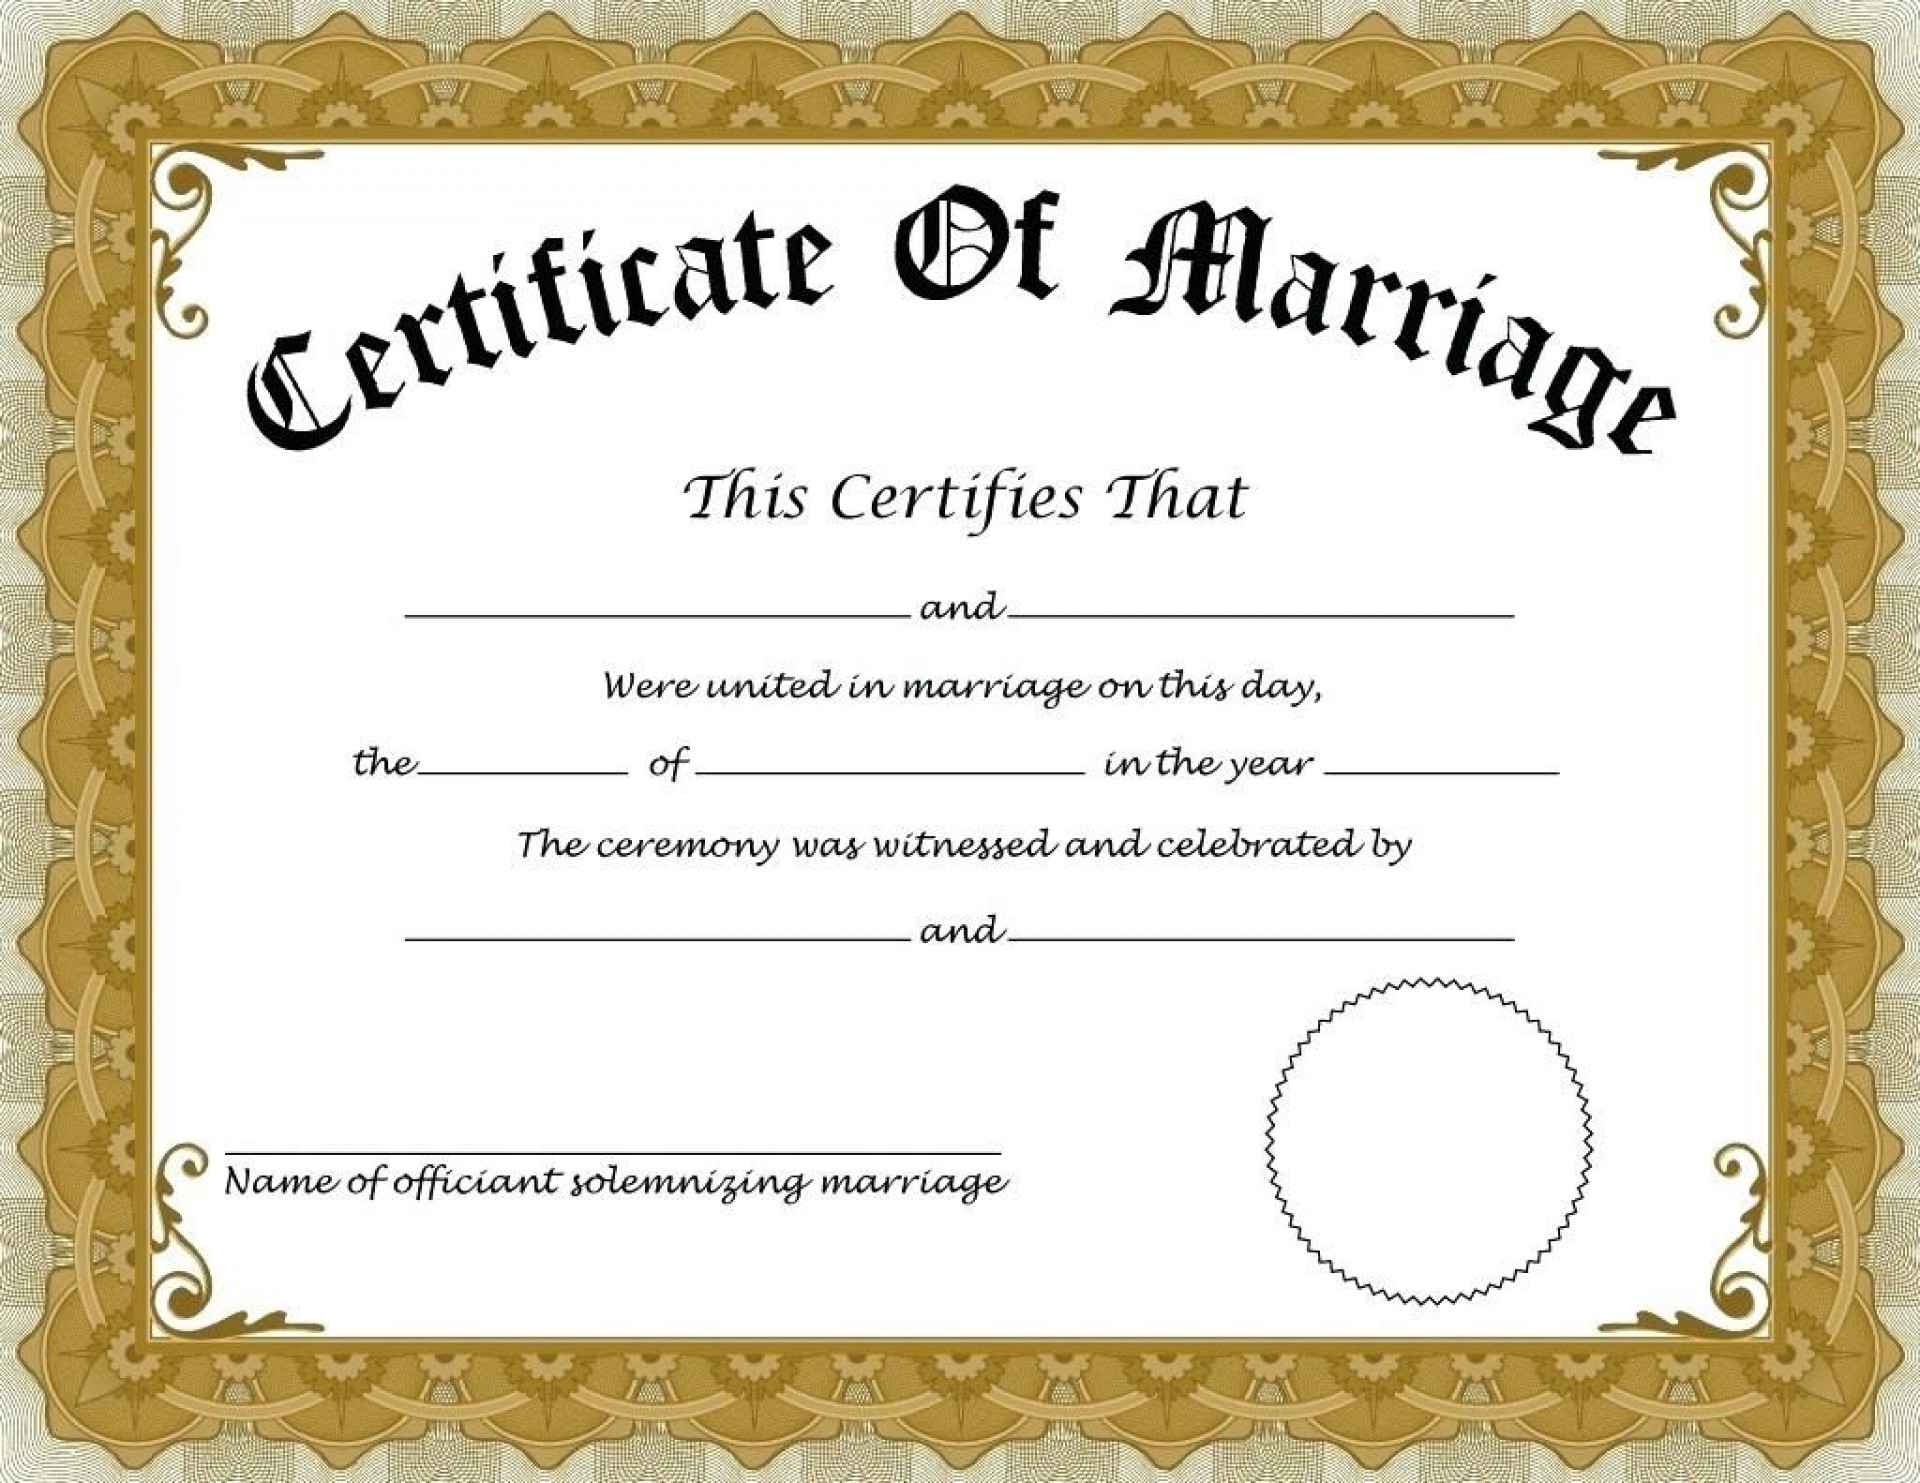 015 Template Ideas Fake Marriage Certificate Free Editable - Fake Marriage Certificate Printable Free